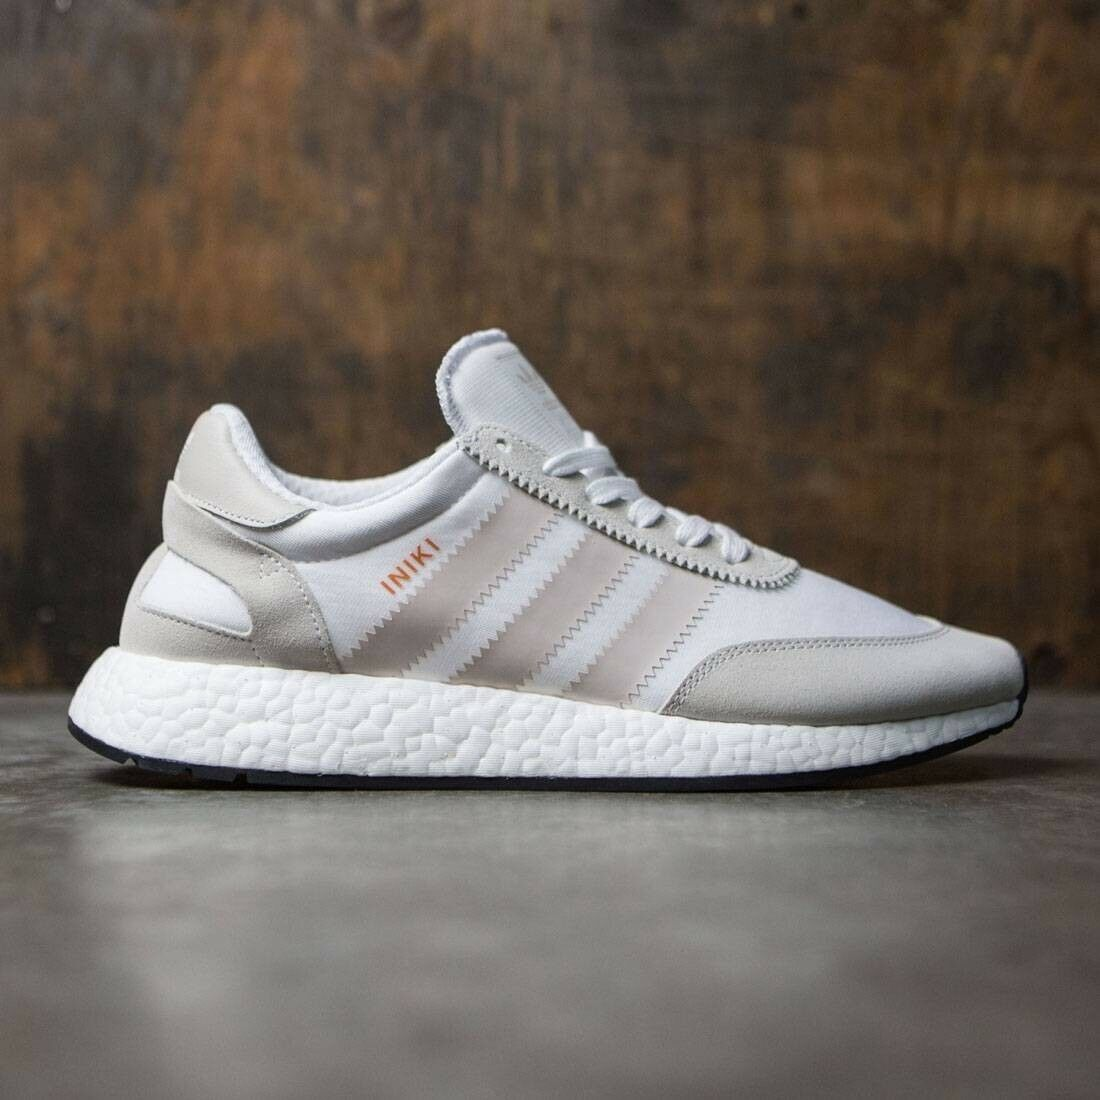 Adidas Iniki Runner Boost White/Pearl Grey Comfortable